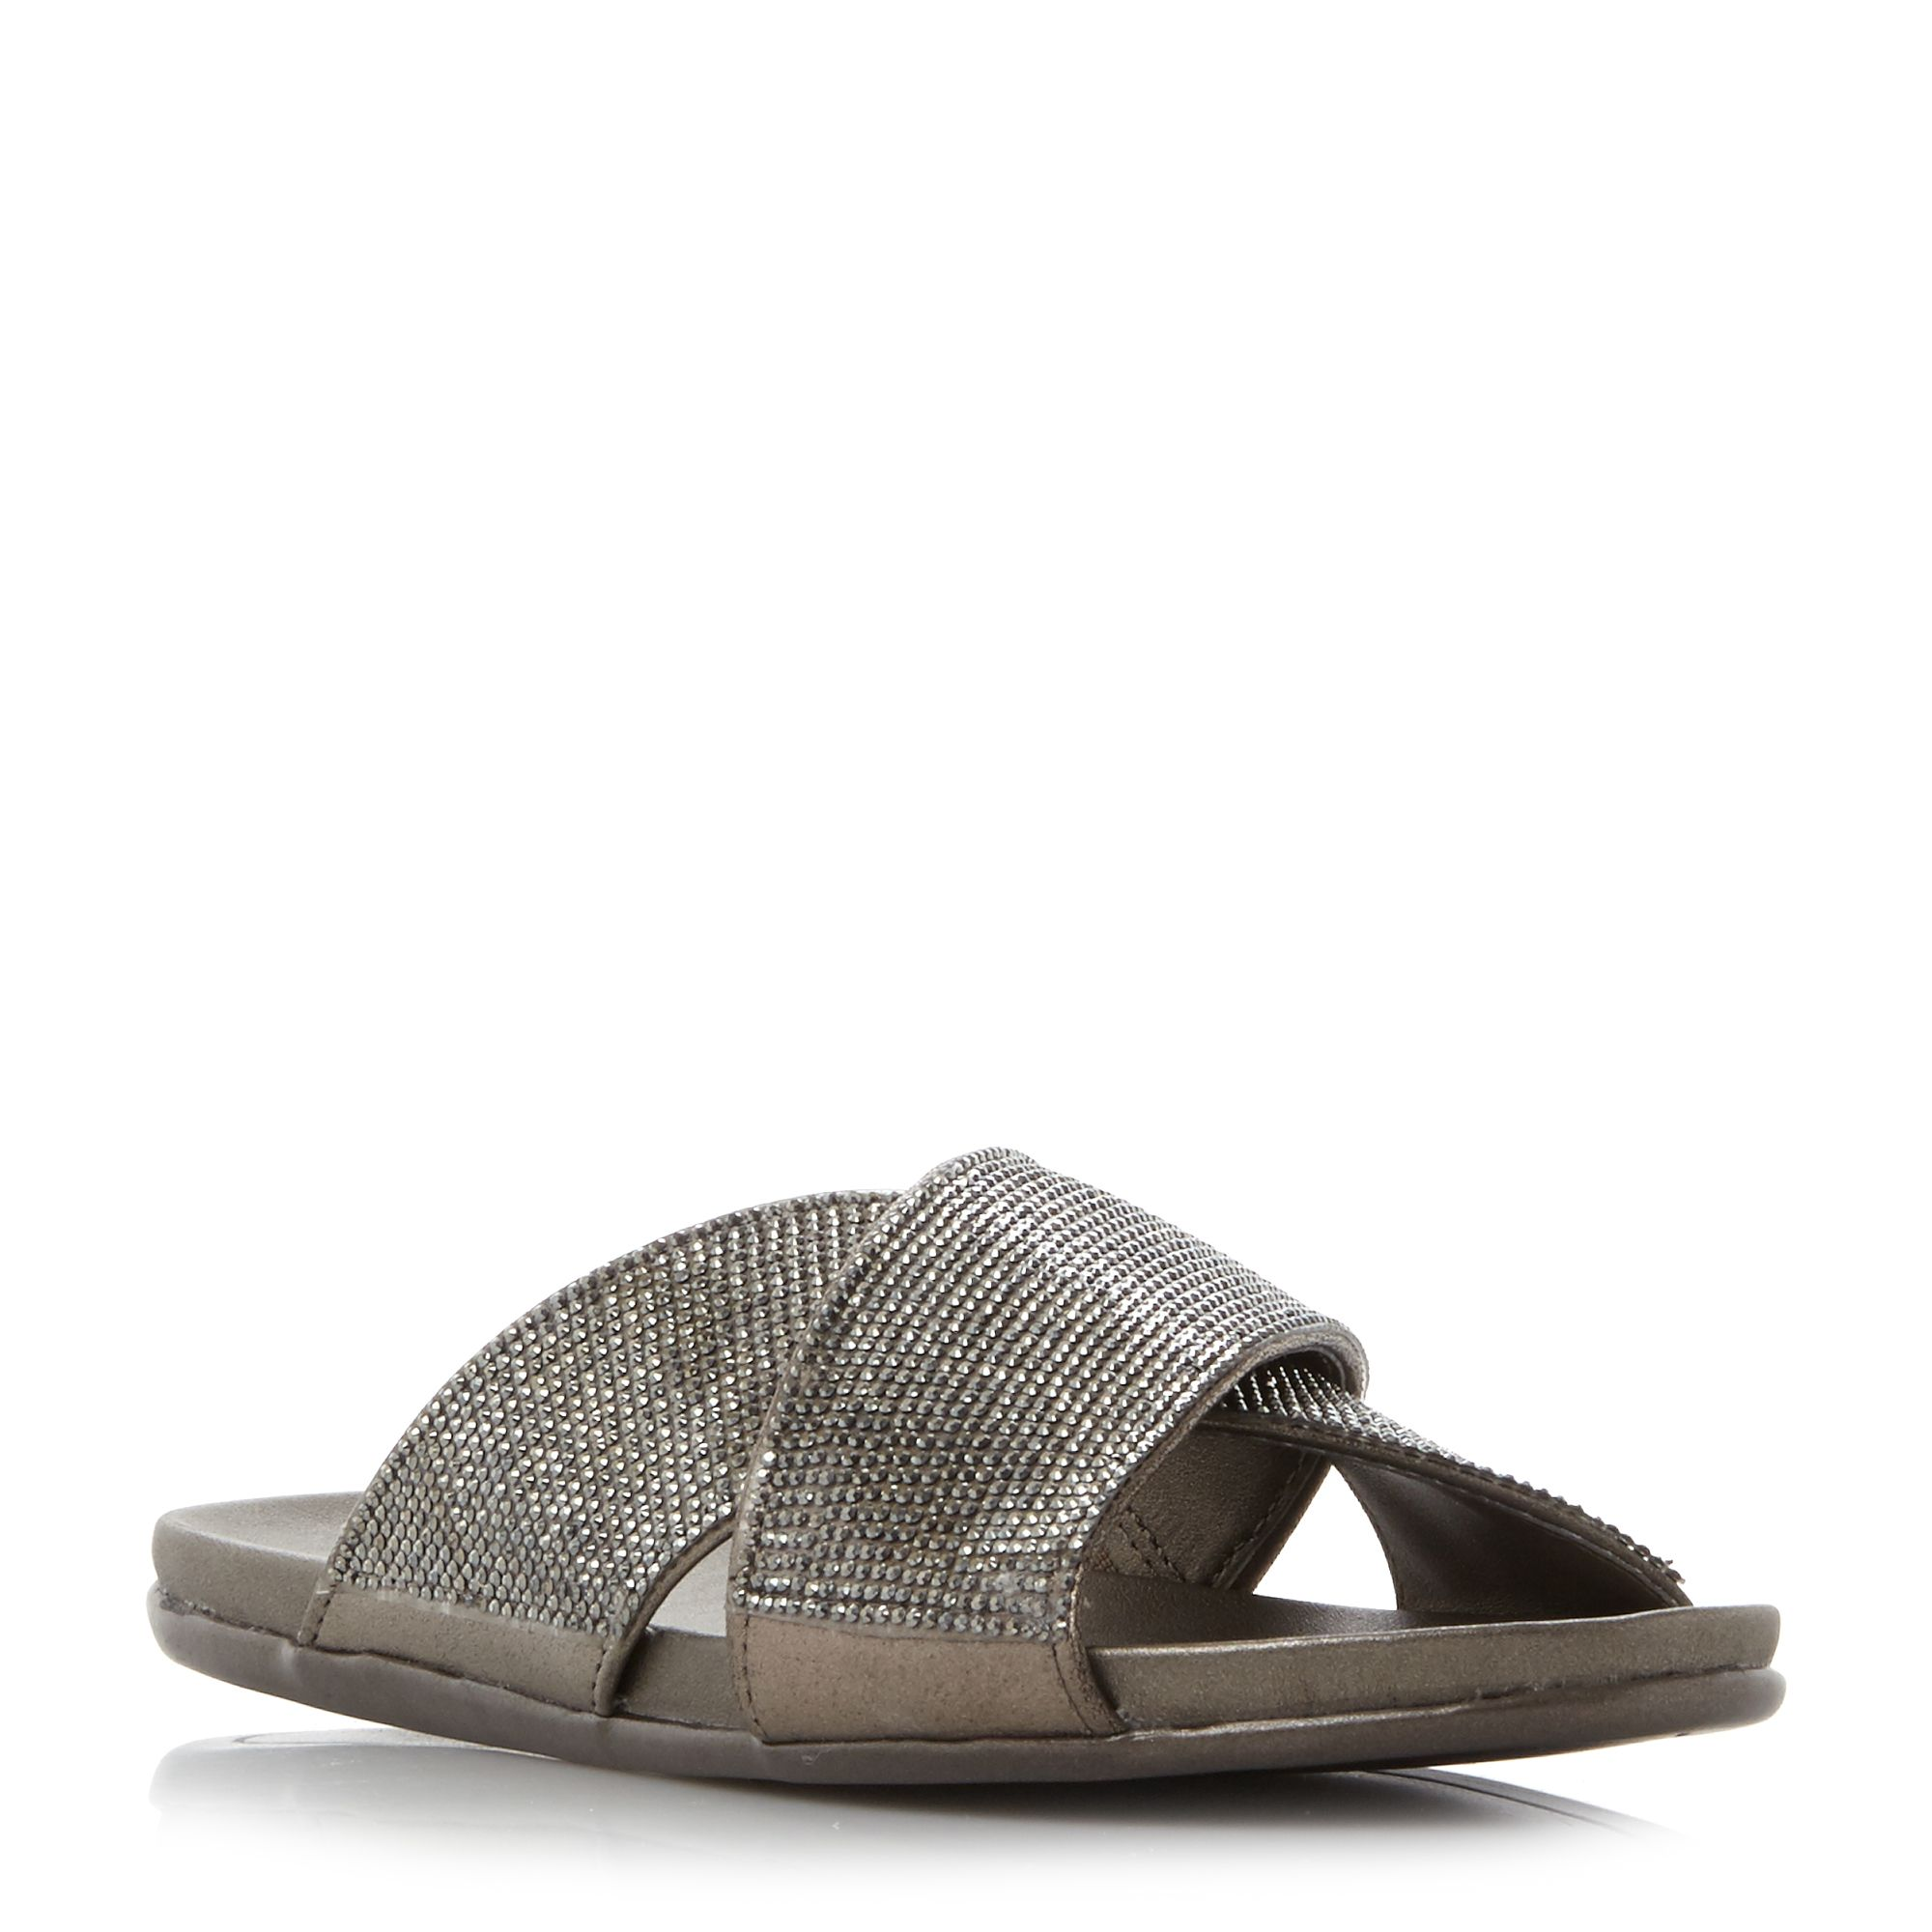 Kenneth Cole Slim Jam Jewelled Crossover Flip Flop Sandals, Pewter